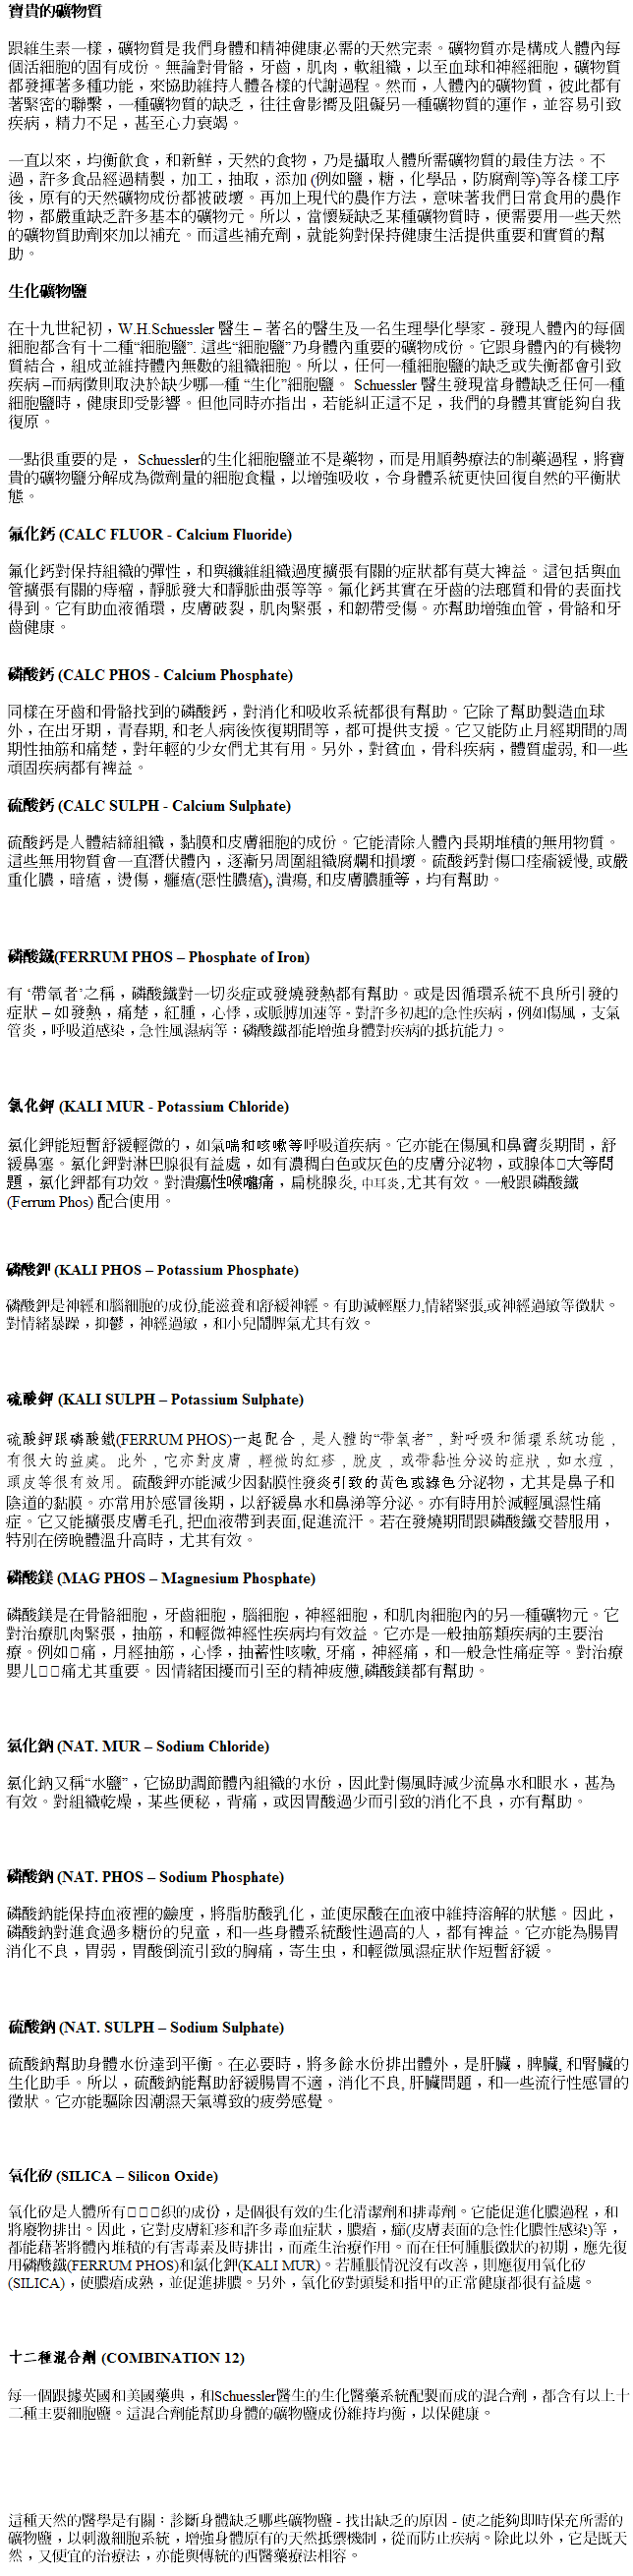 SCHUSSLER SALTS TRANSLATED - CHINESE